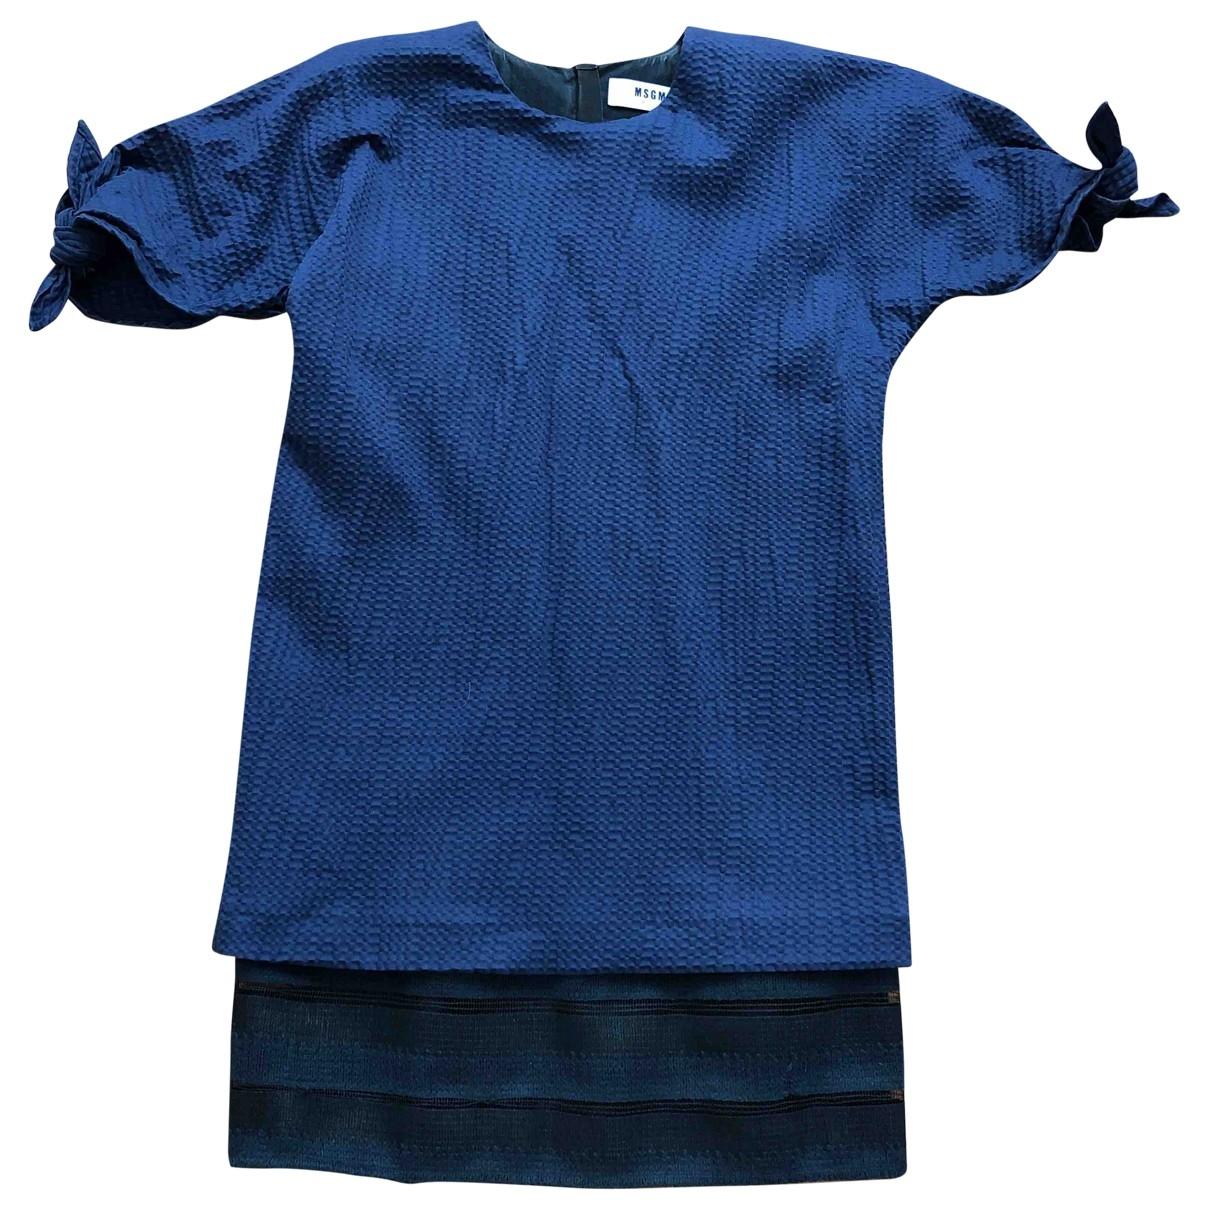 Msgm \N Blue Cotton dress for Women 42 IT